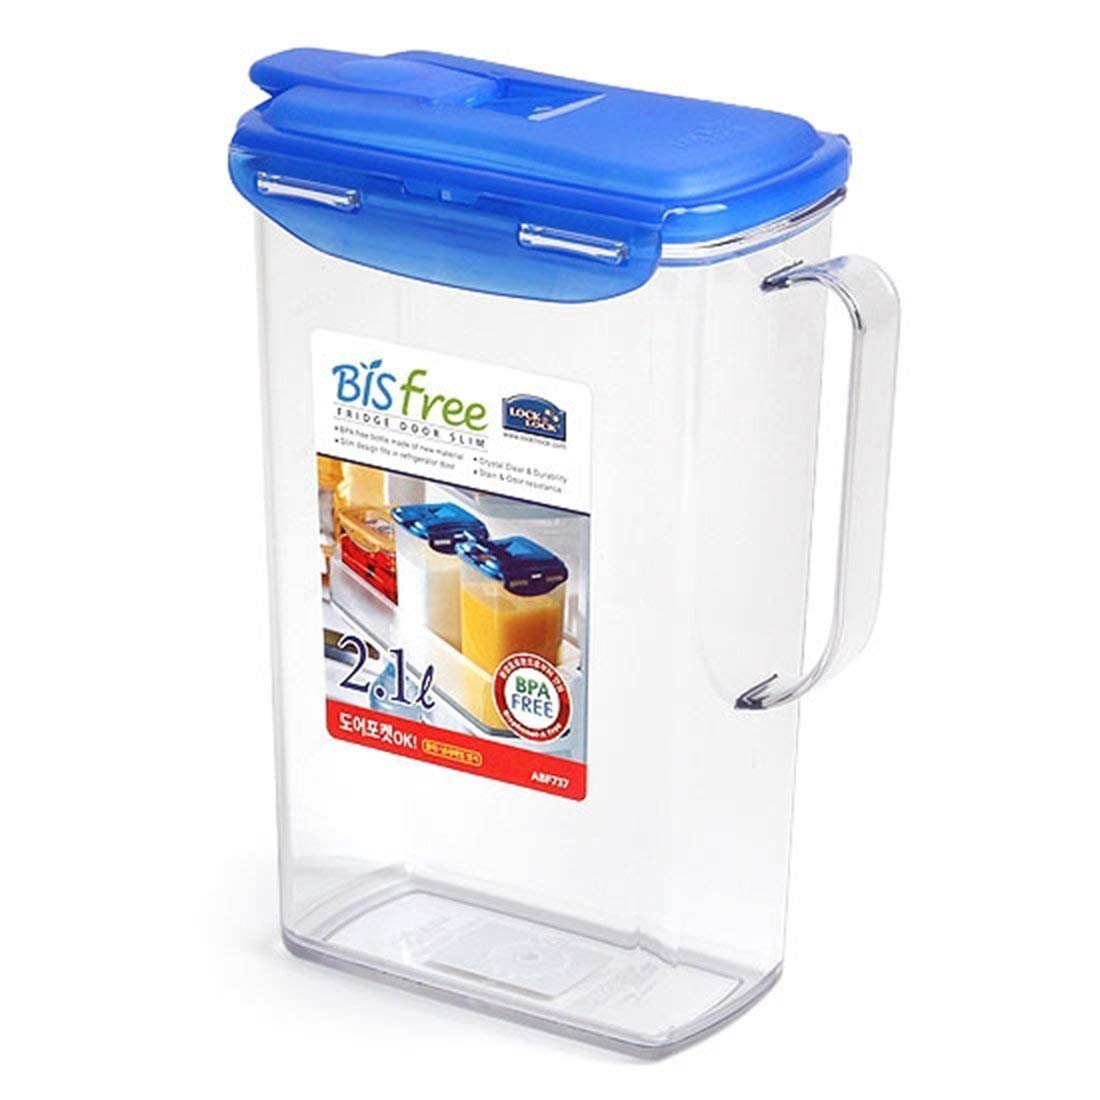 Get Quotations · Lock U0026 Lock TRITAN, BIS FREE WATER, JUICE Storage Container  Pitcher Jug 71oz /